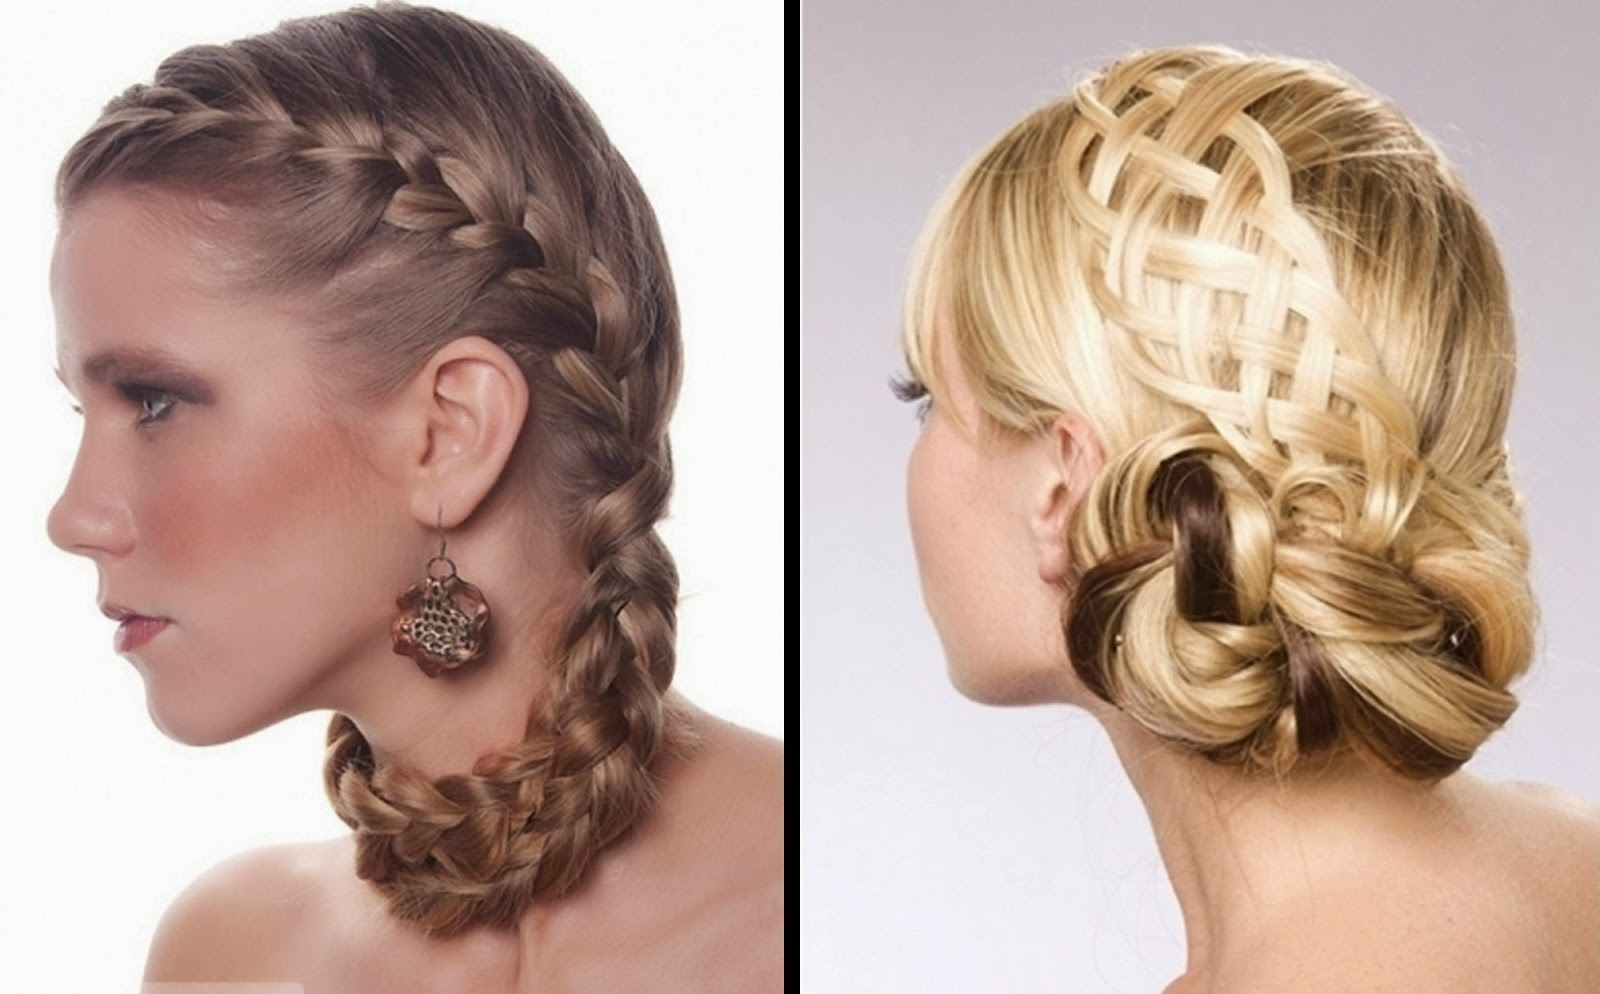 Fancy Updo Hairstyles Fancy Updo Hairstyles For Long Hair Wedding With Regard To Fancy Updo Hairstyles For Long Hair (View 4 of 15)